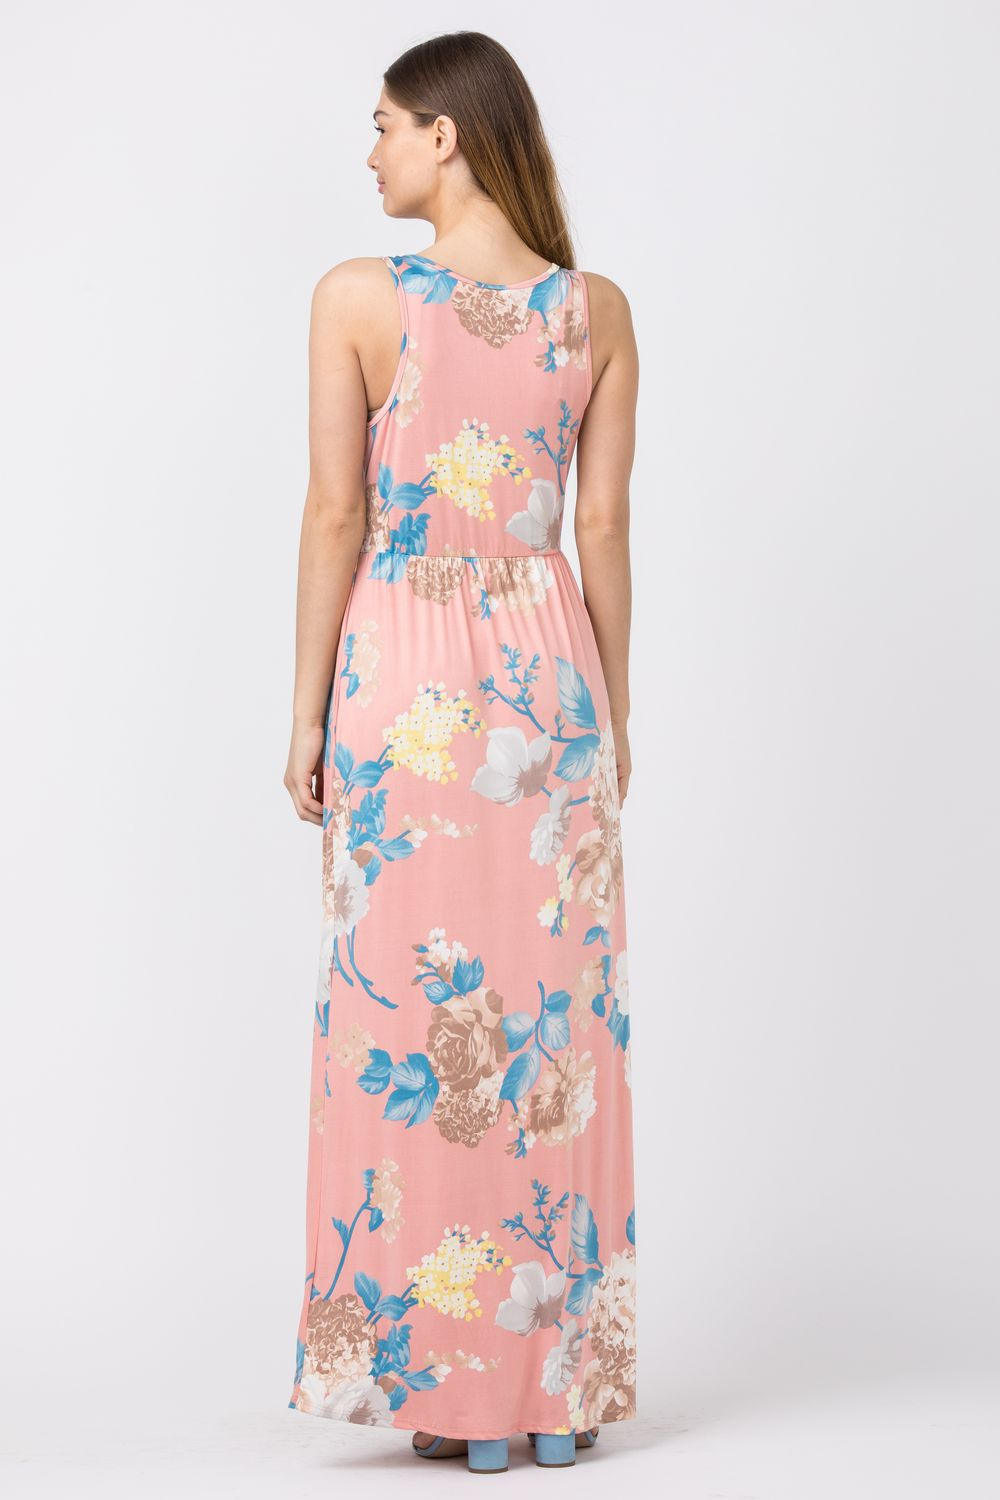 Dust Pink White Floral Maxi Dress